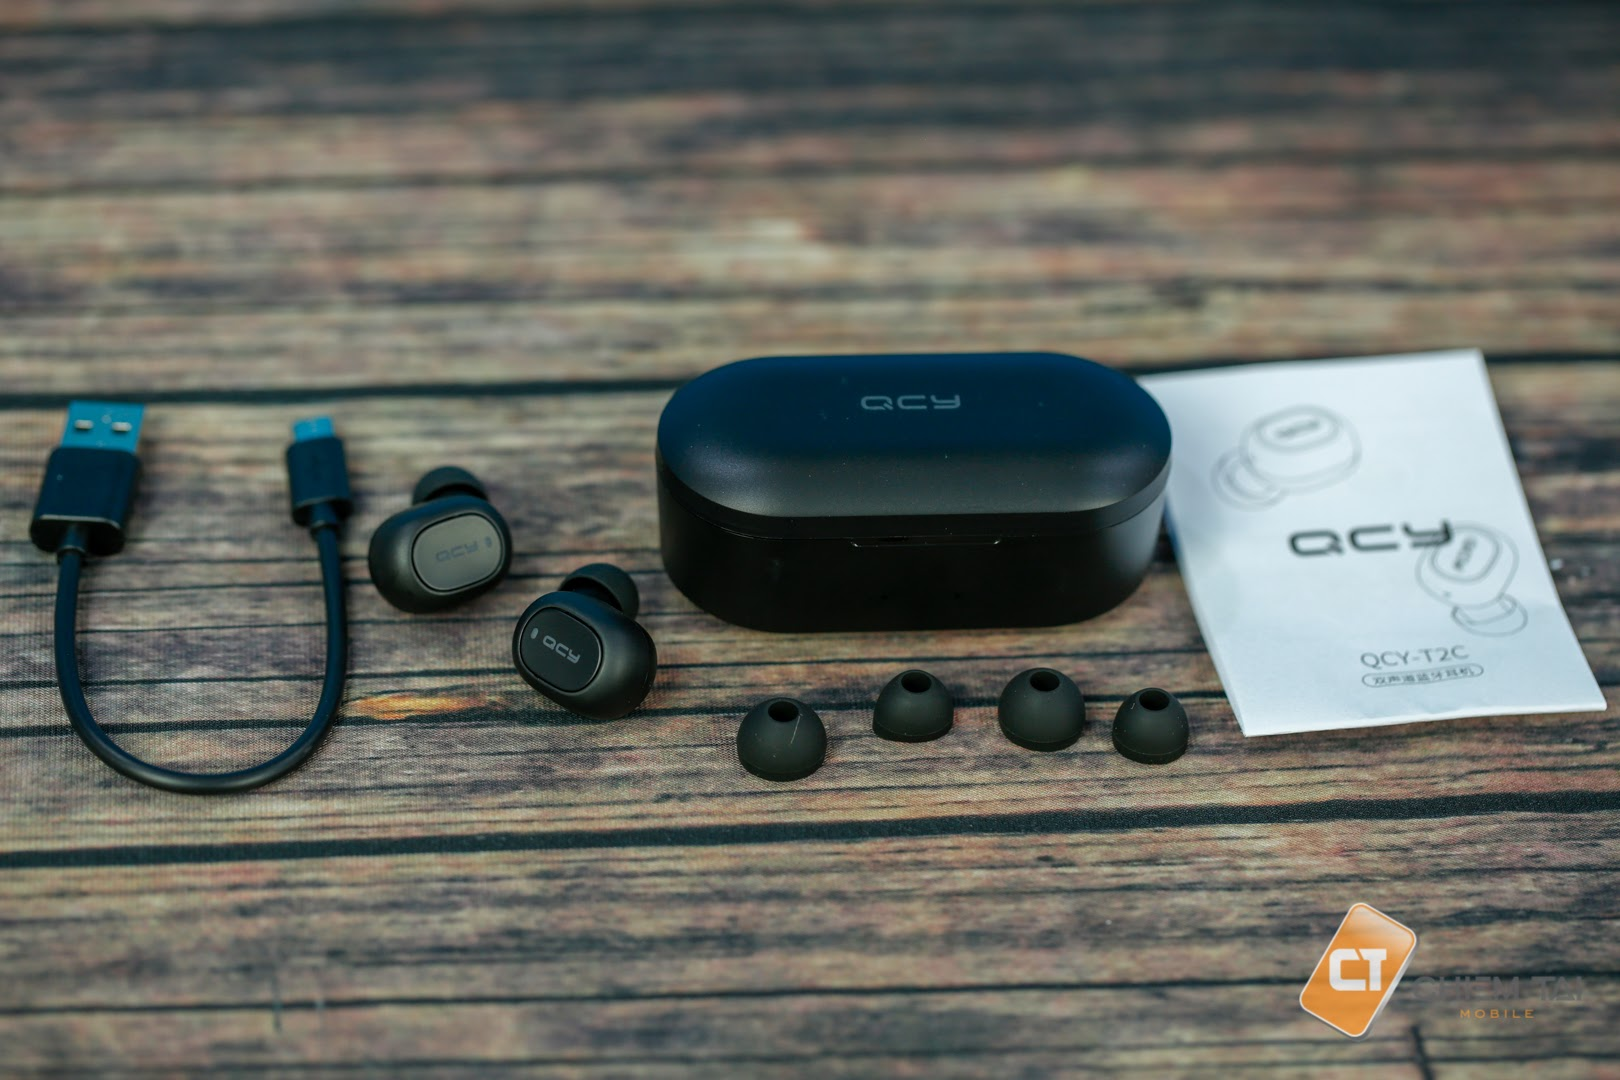 Tai nghe Bluetooth True Wireless QCY T2C